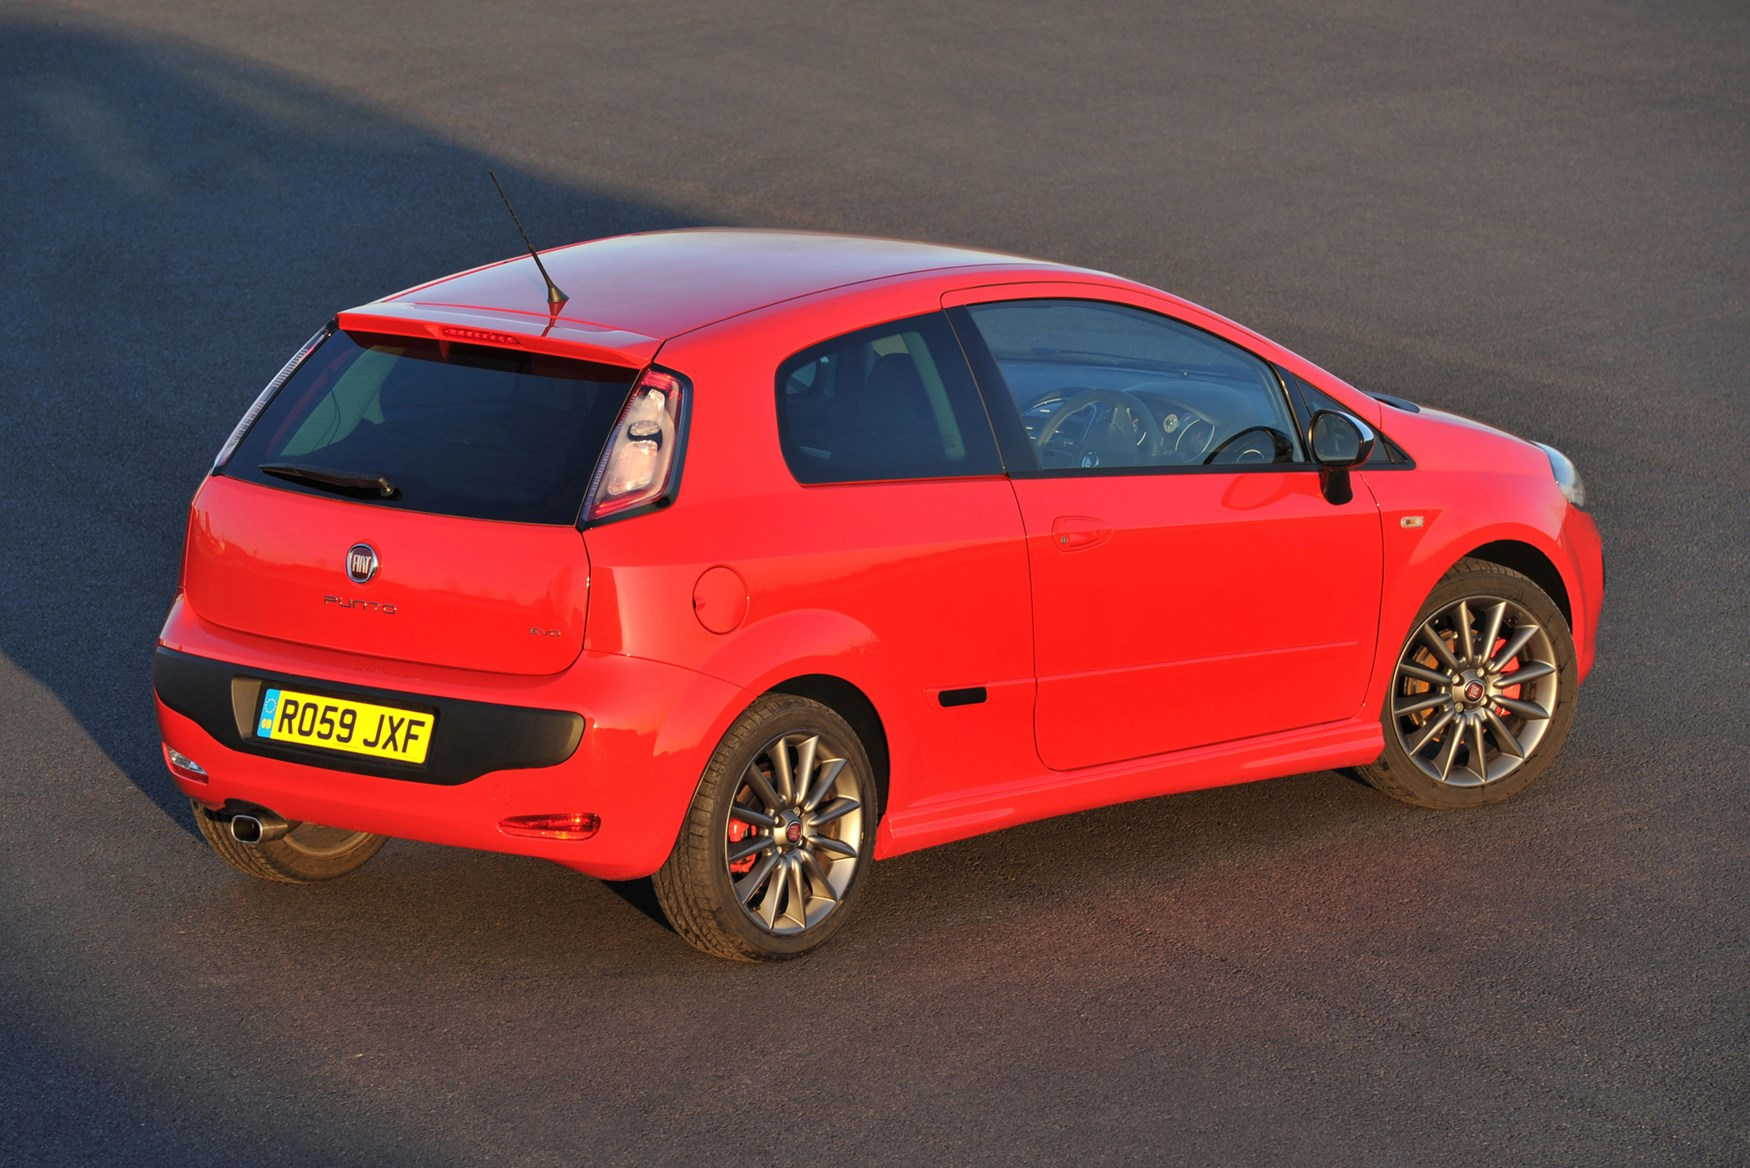 Fiat Punto Evo Hatchback (2010 - 2012) Features, Equipment and Accessories  | Parkers